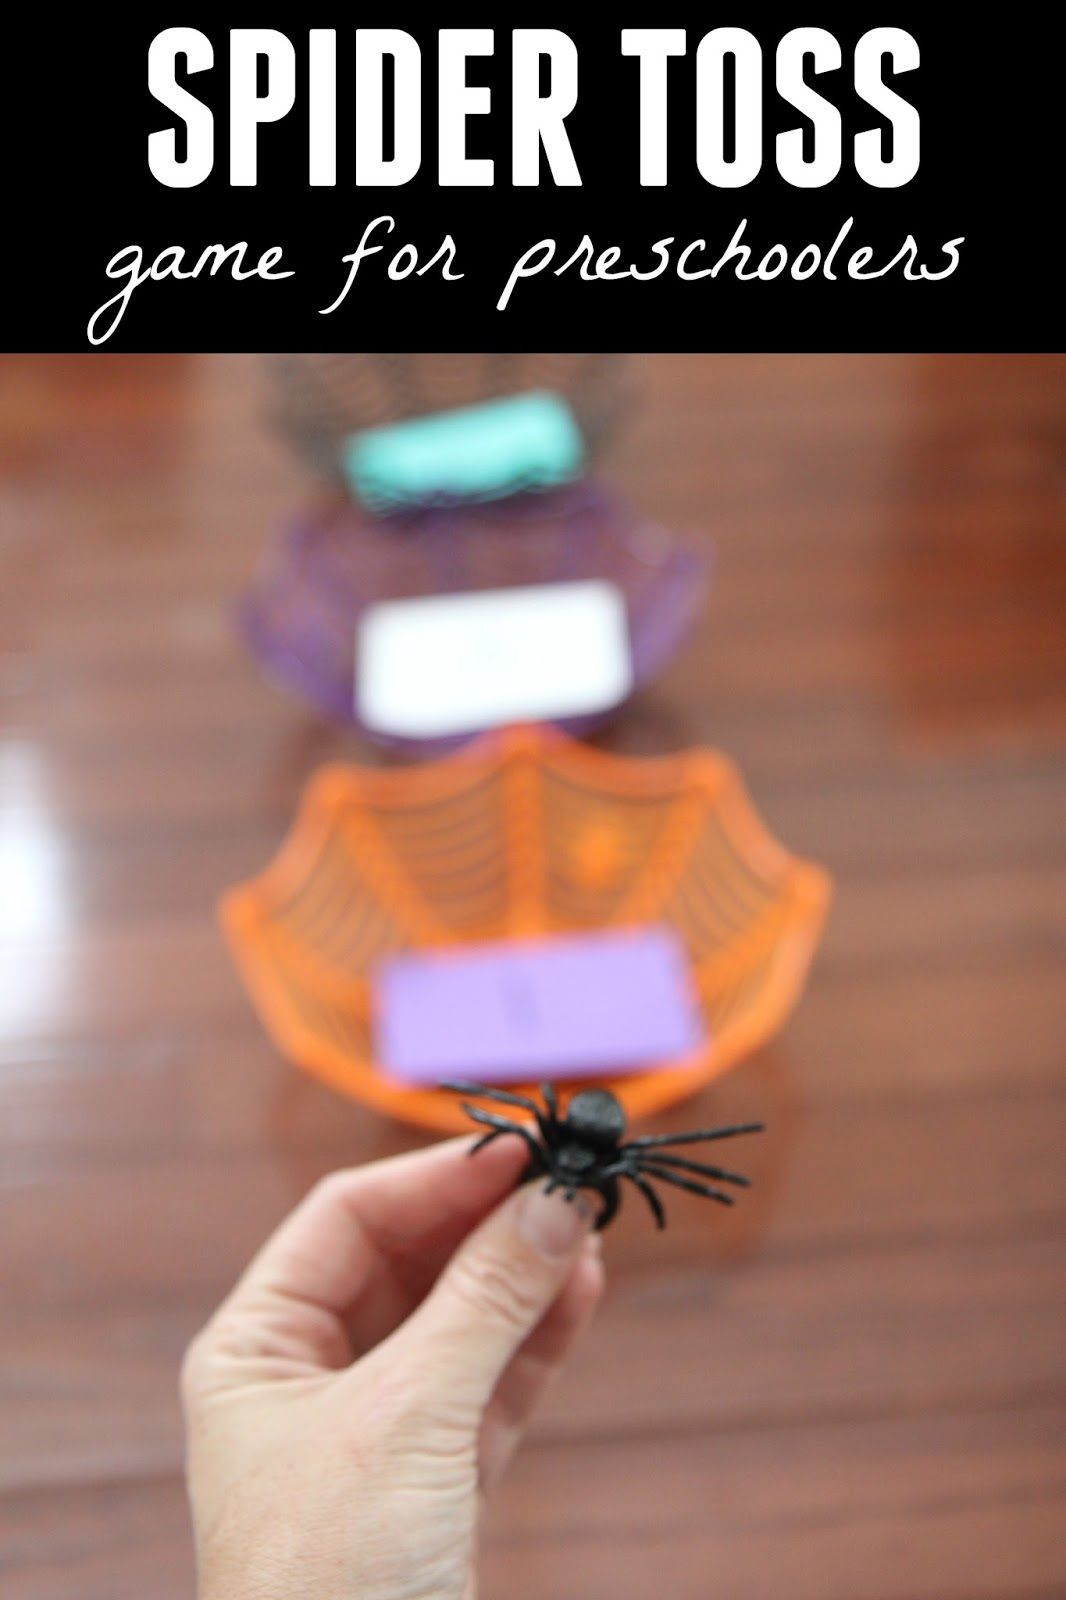 Spider Toss Game for Preschoolers | Carnival games, A love and ...